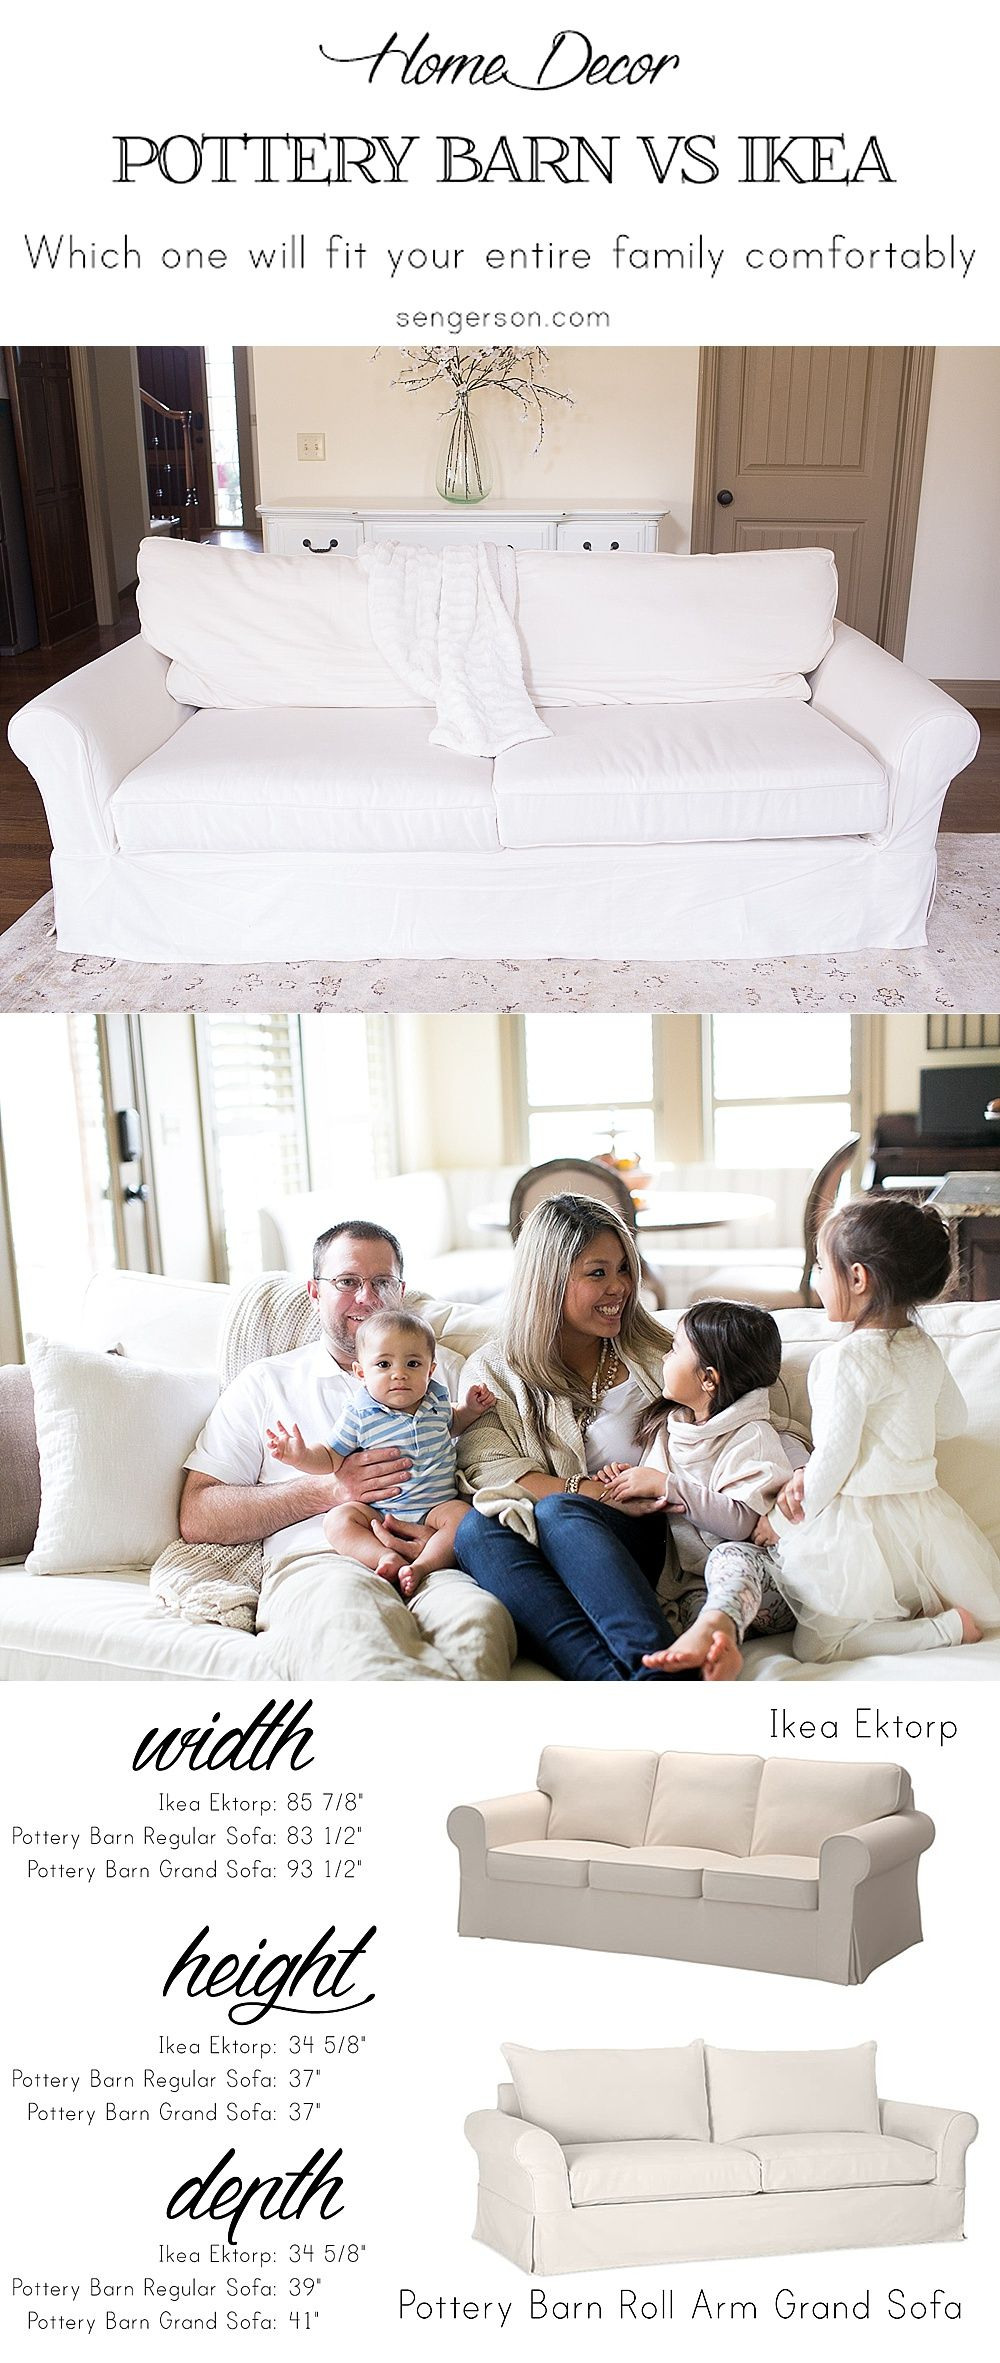 Tips On Buying A Sofa   The Recommend Couch Is The Pottery Barn Rollarm  Grand Sofa And Things To Think About   Especially A Mom With Three Kids!